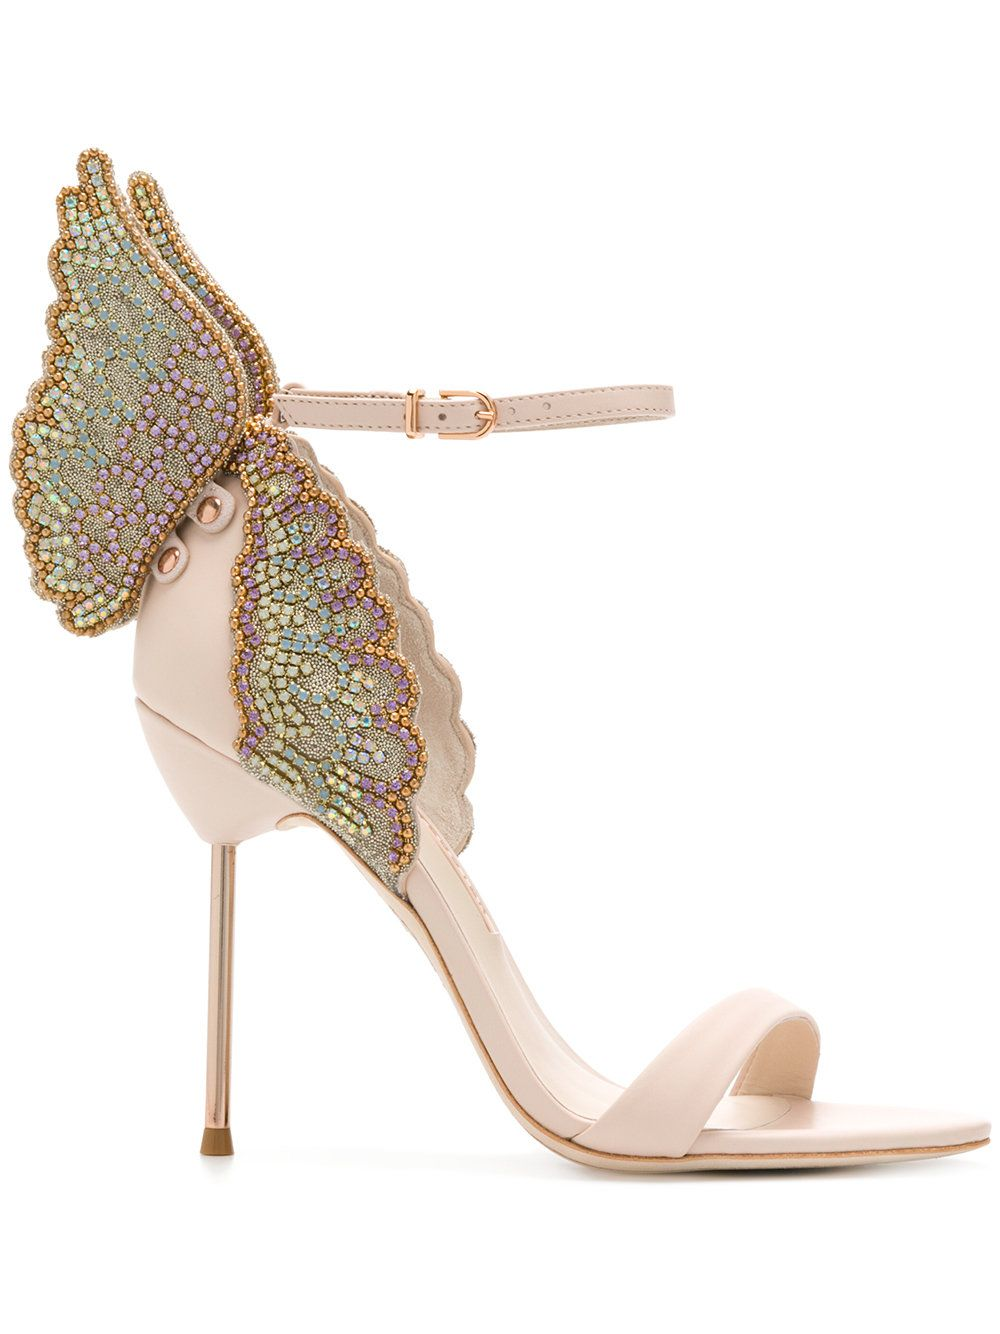 Evangeline butterfly sandals - Nude & Neutrals Sophia Webster Outlet Prices Discounts Very Cheap For Sale jAsWeKt89